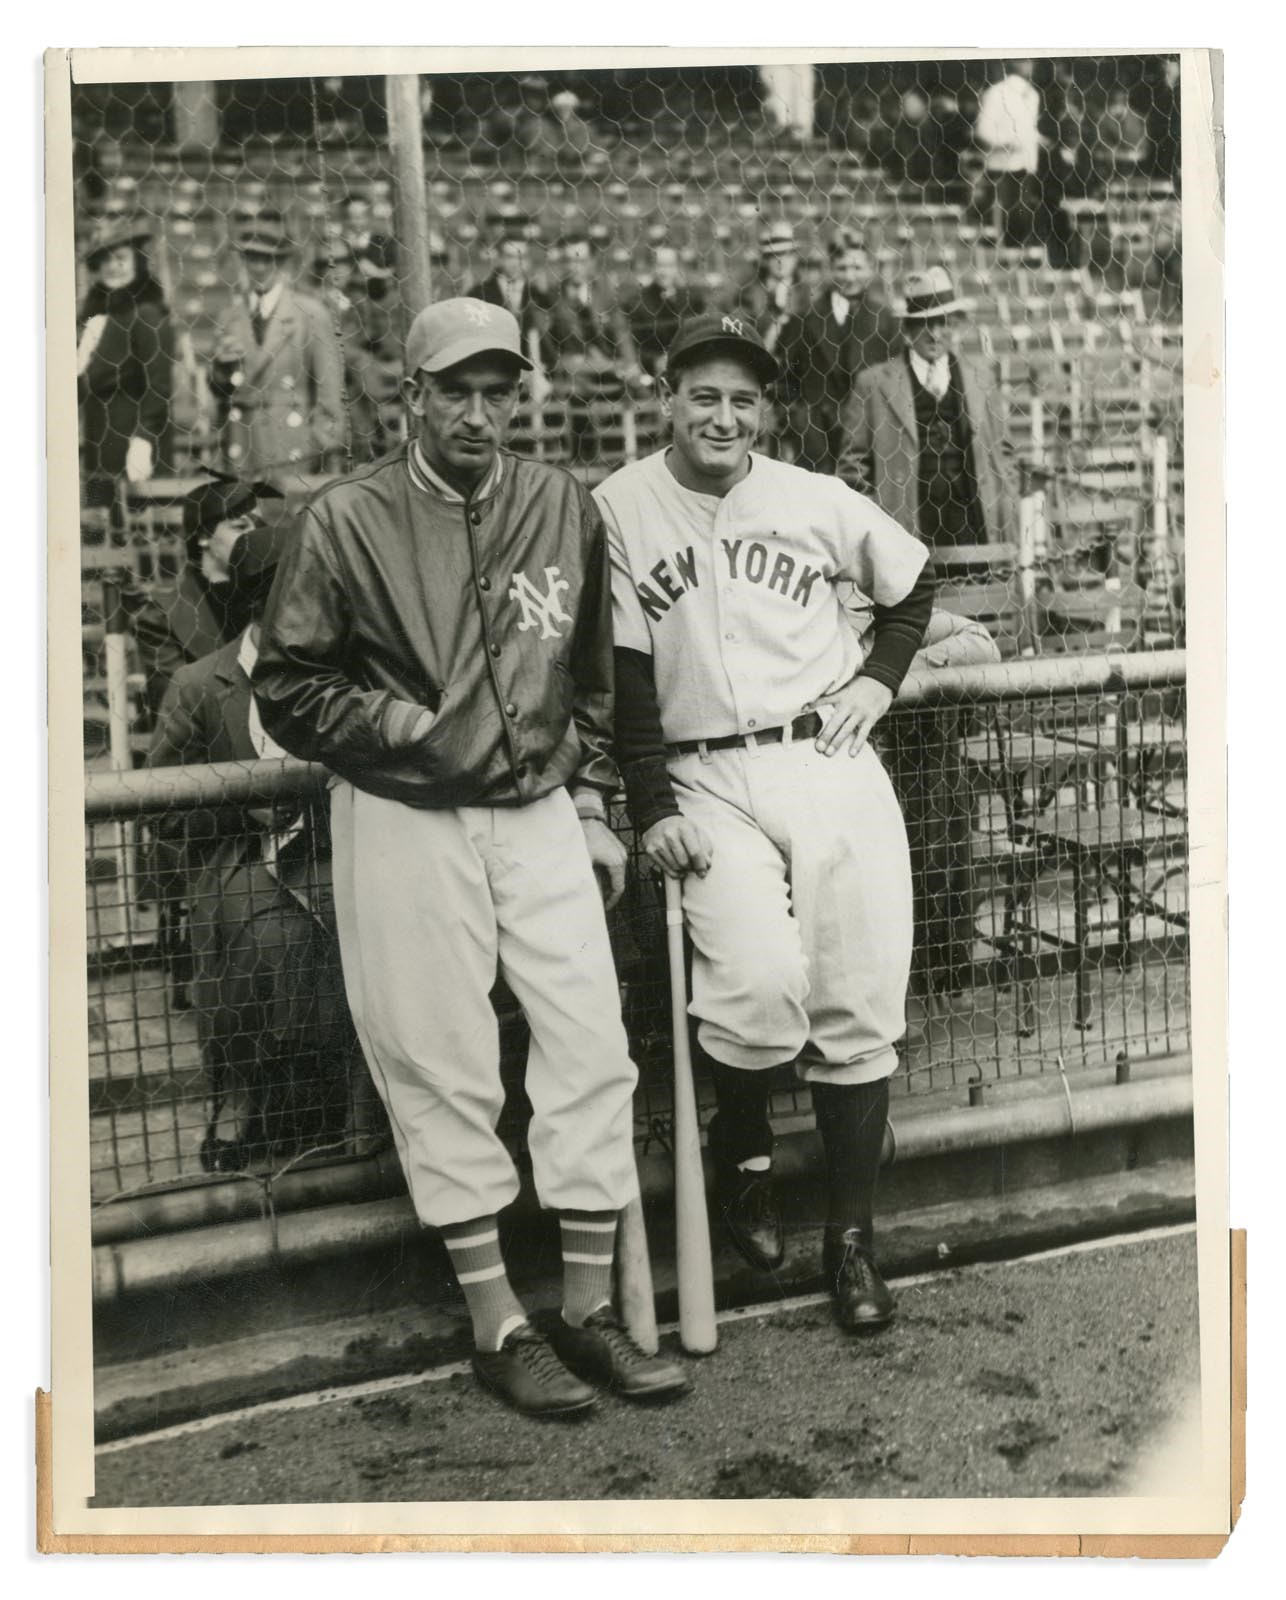 Vintage Sports Photographs - Monthly 09-18